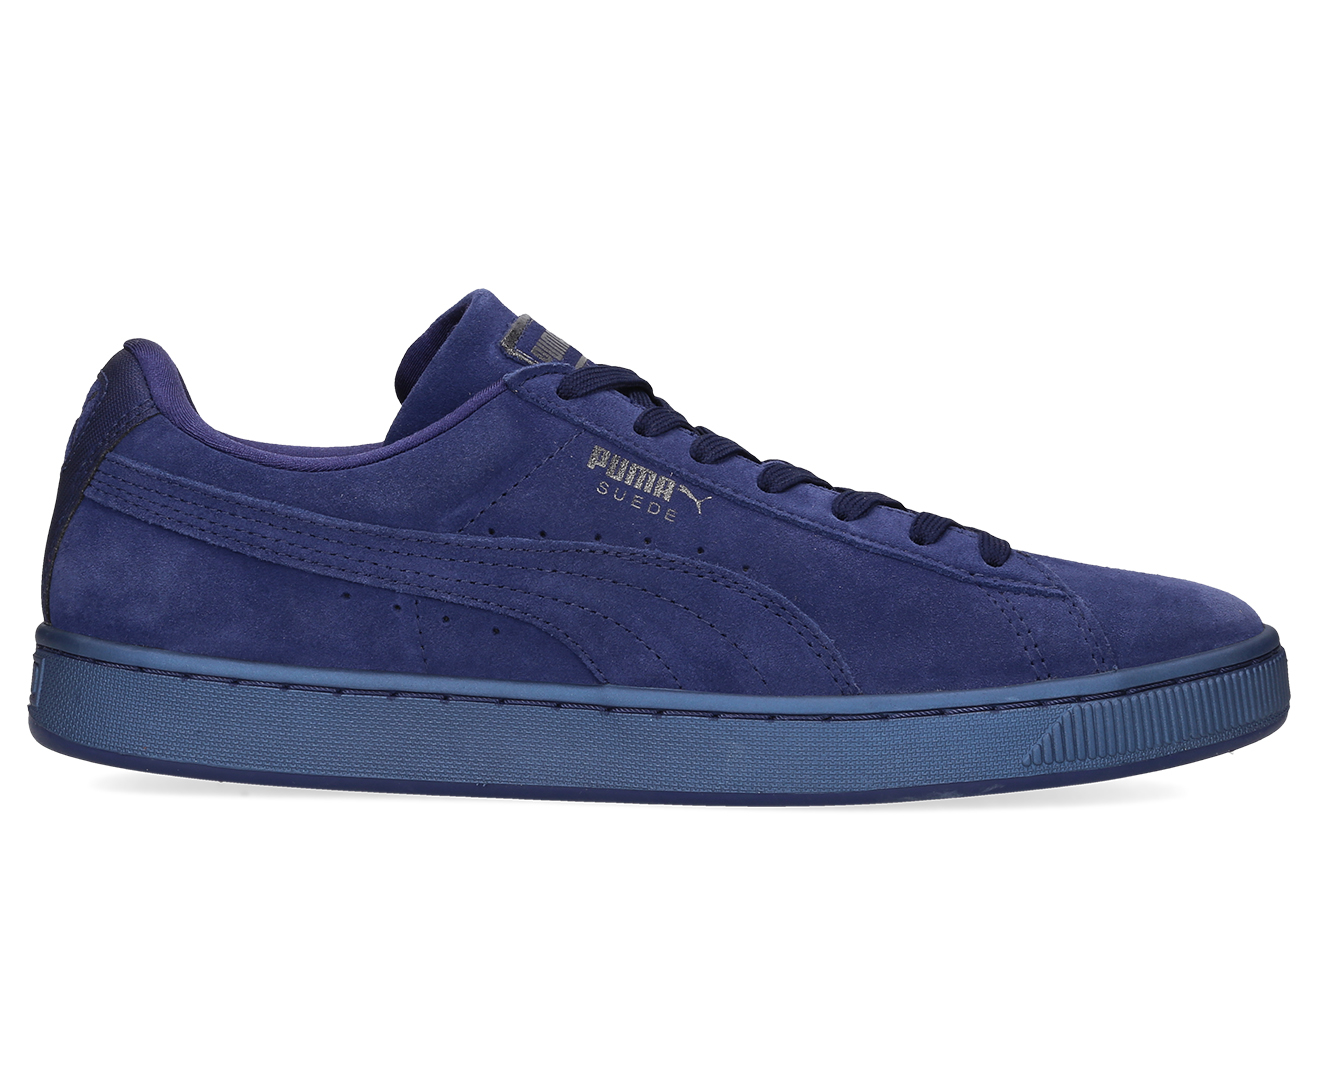 Details about Puma Men's Suede Classic Anodized Shoe Blue Depths